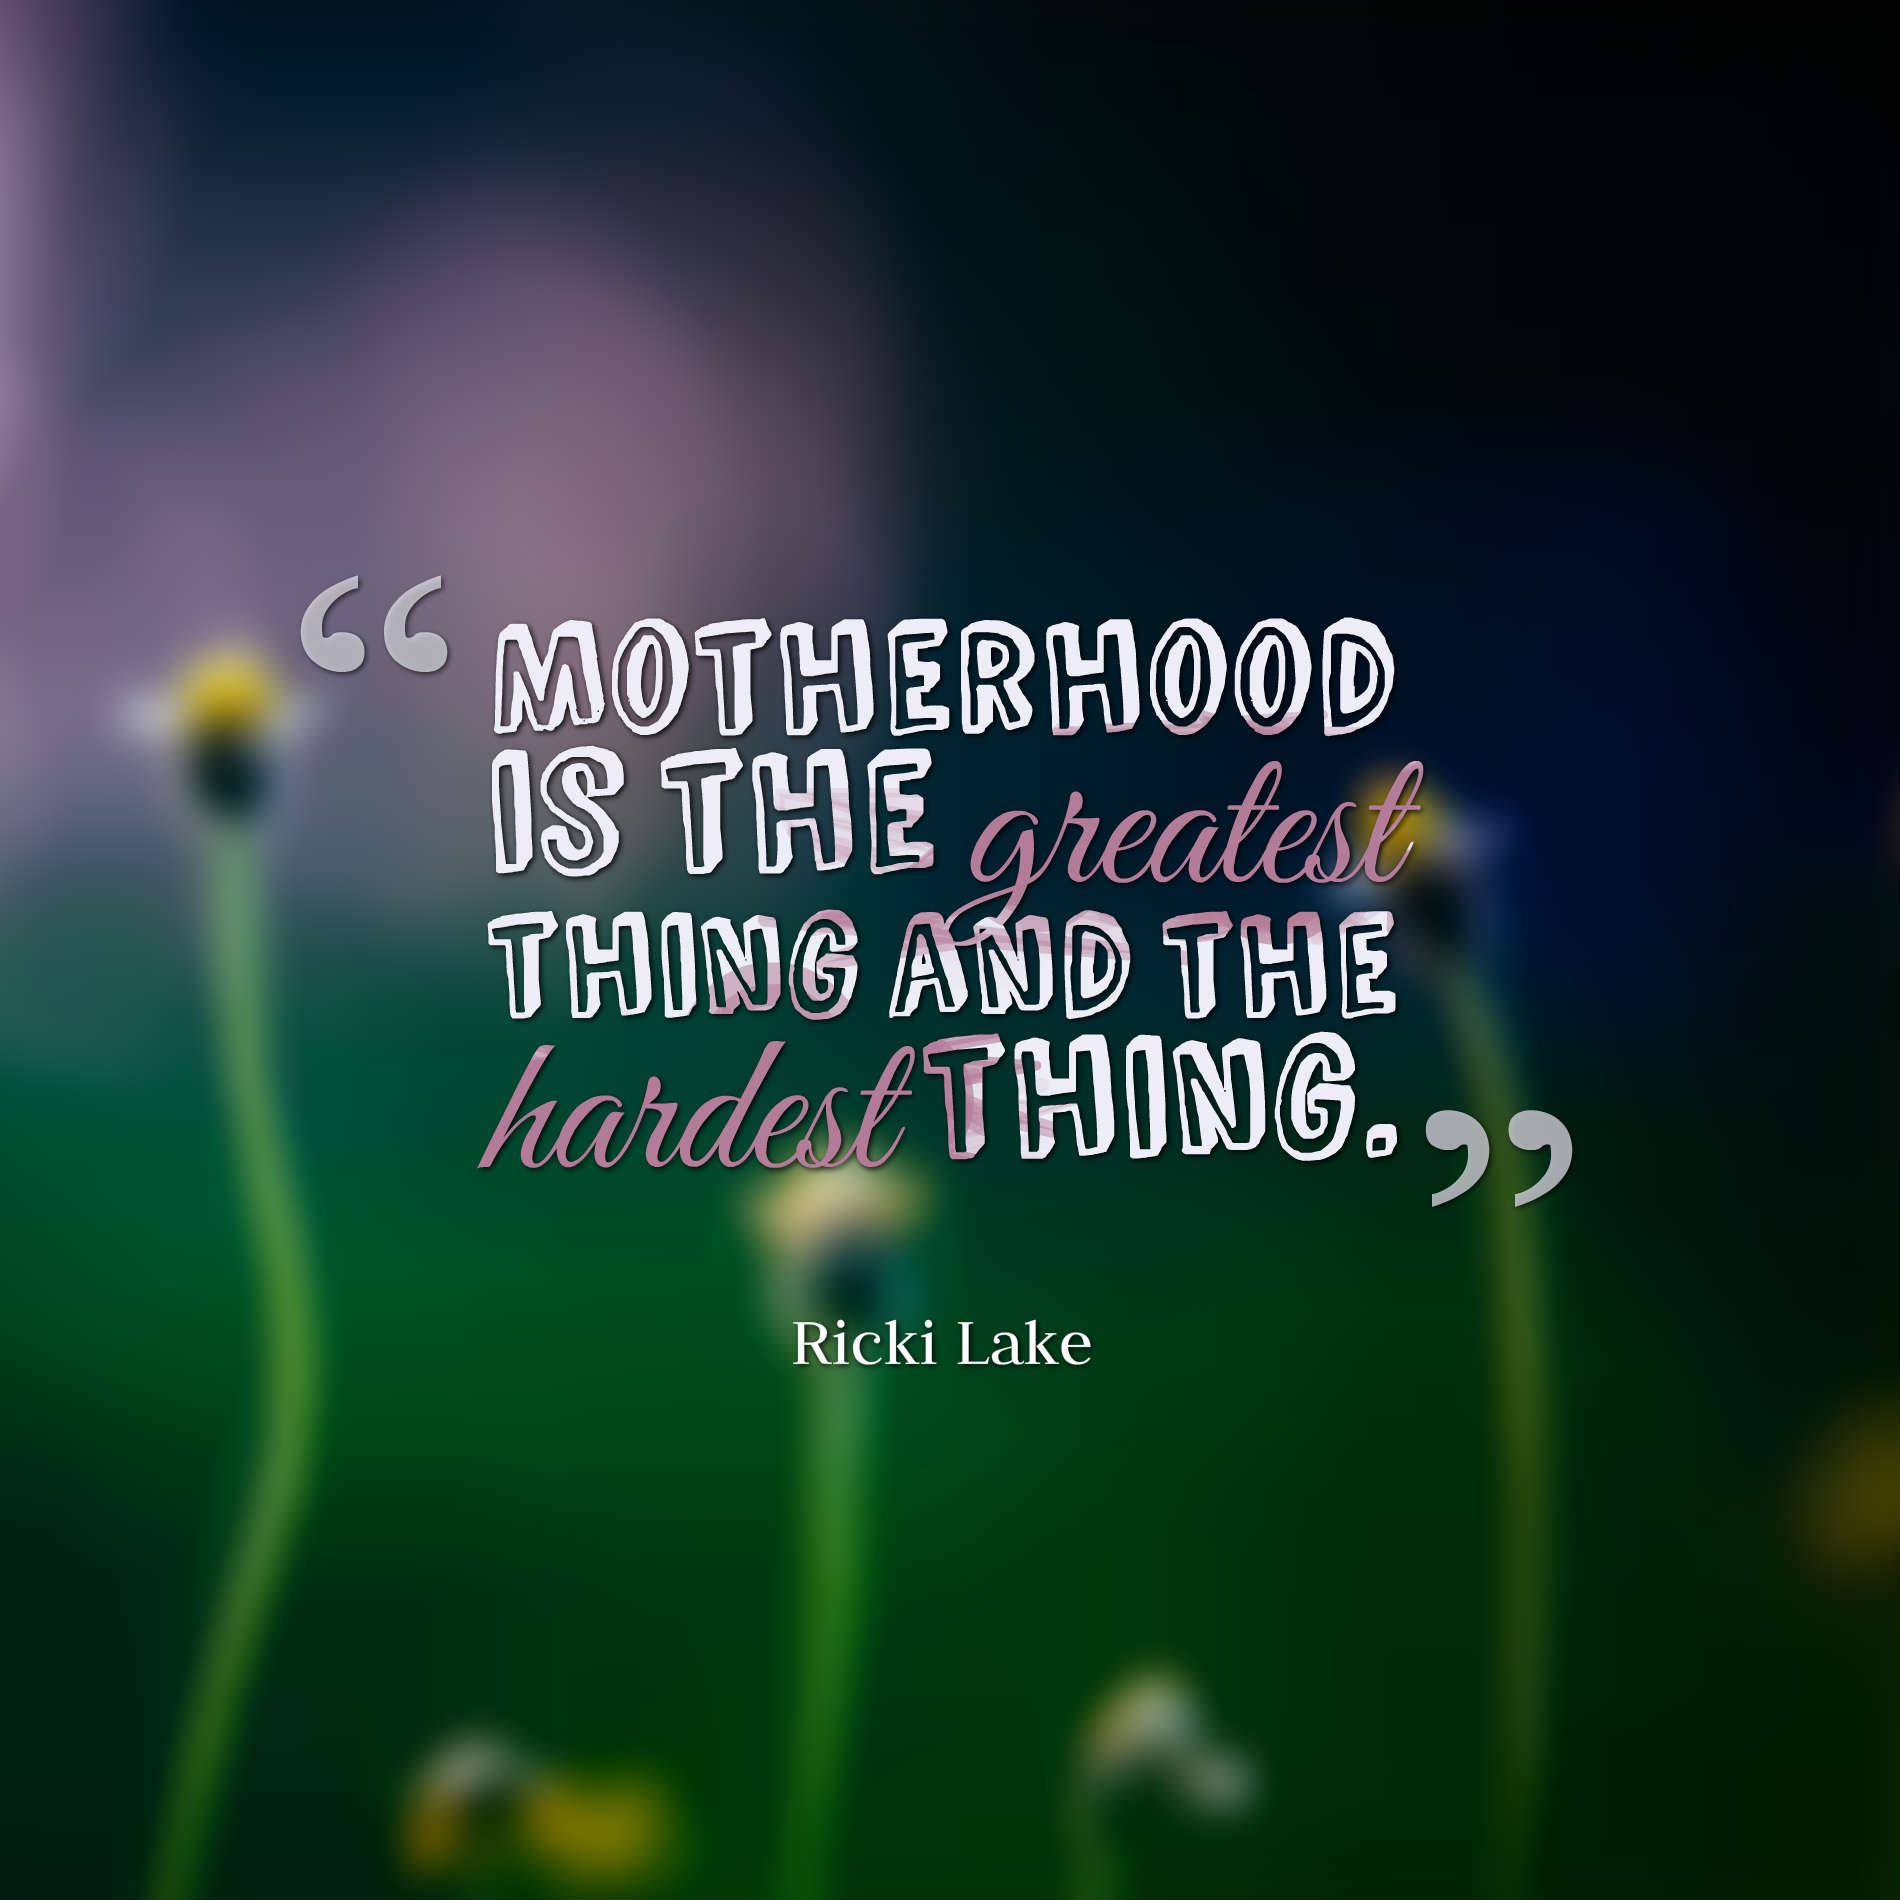 hi-res image of Motherhood is the greatest thing and the hardest thing.